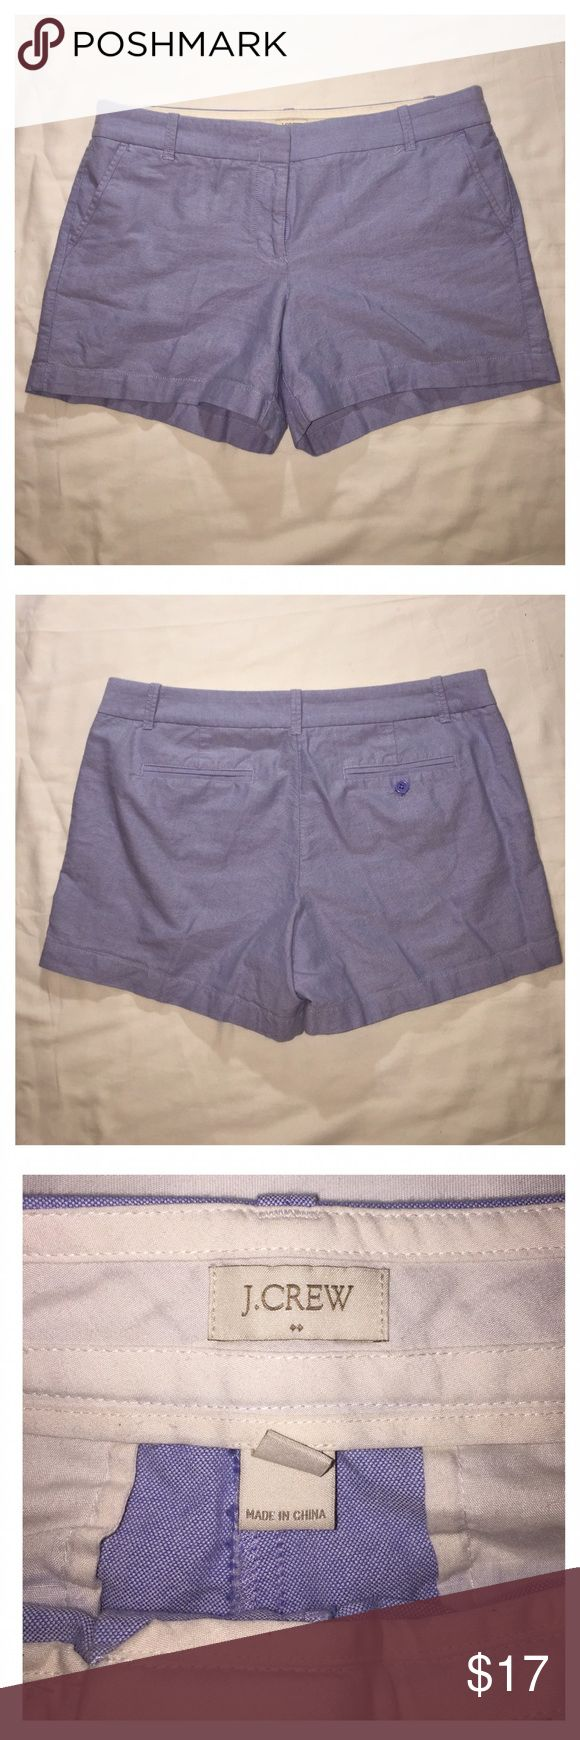 J.Crew light blue shorts J.Crew light blue shorts clean inside and out good condition 100% cotton J. Crew Shorts